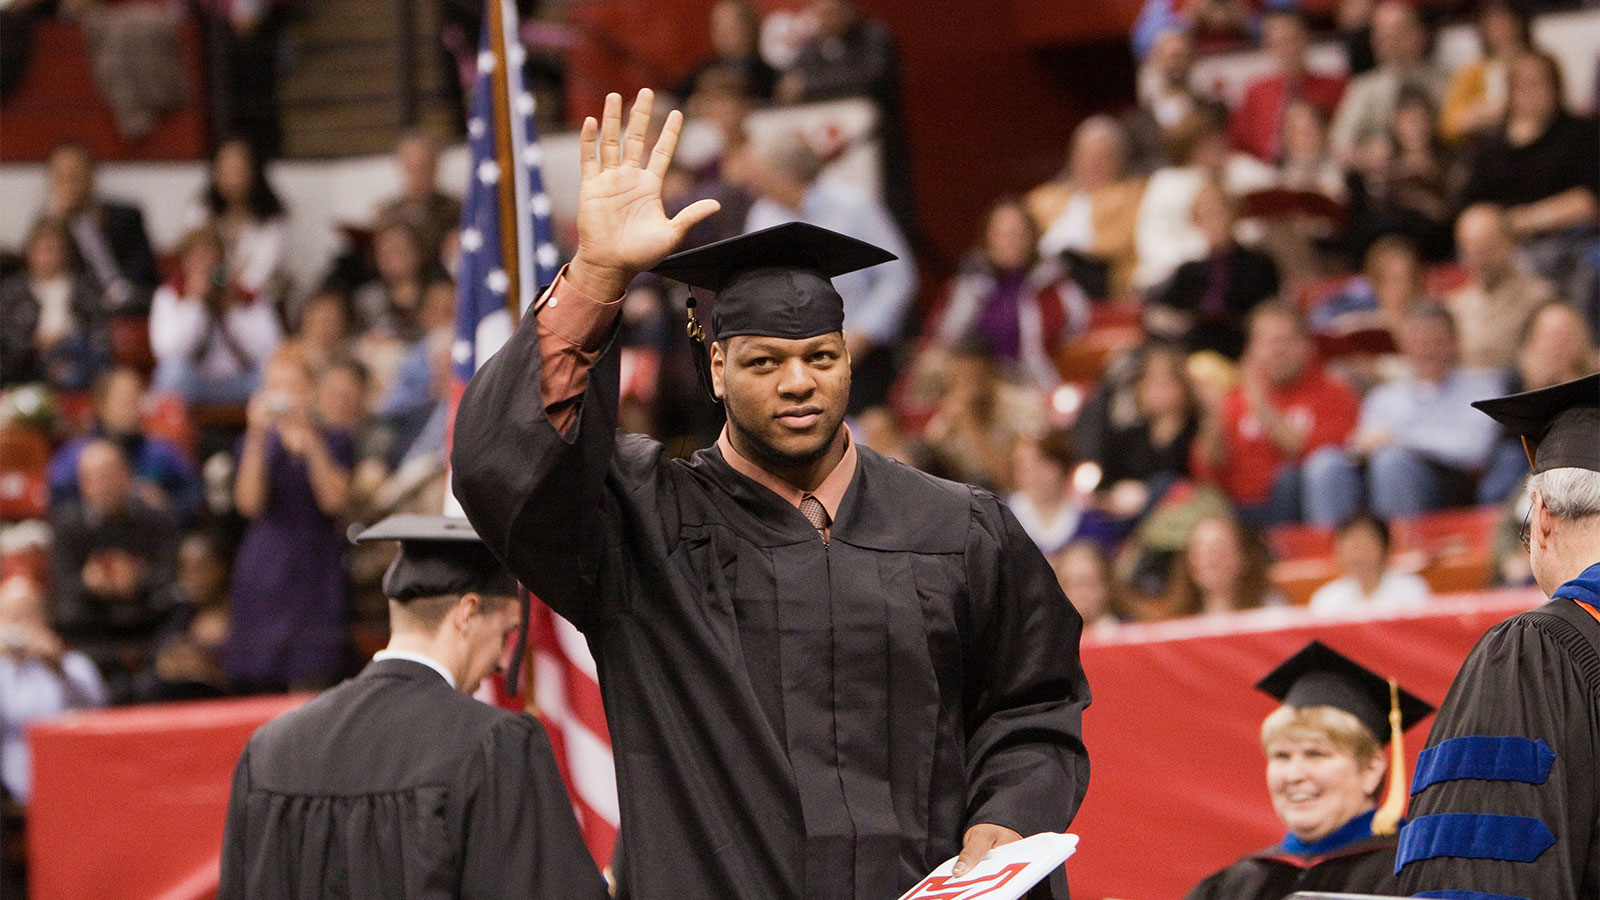 College of Engineering alumni Ndamukong Suh receives his diploma from the University of Nebraska-Lincoln.